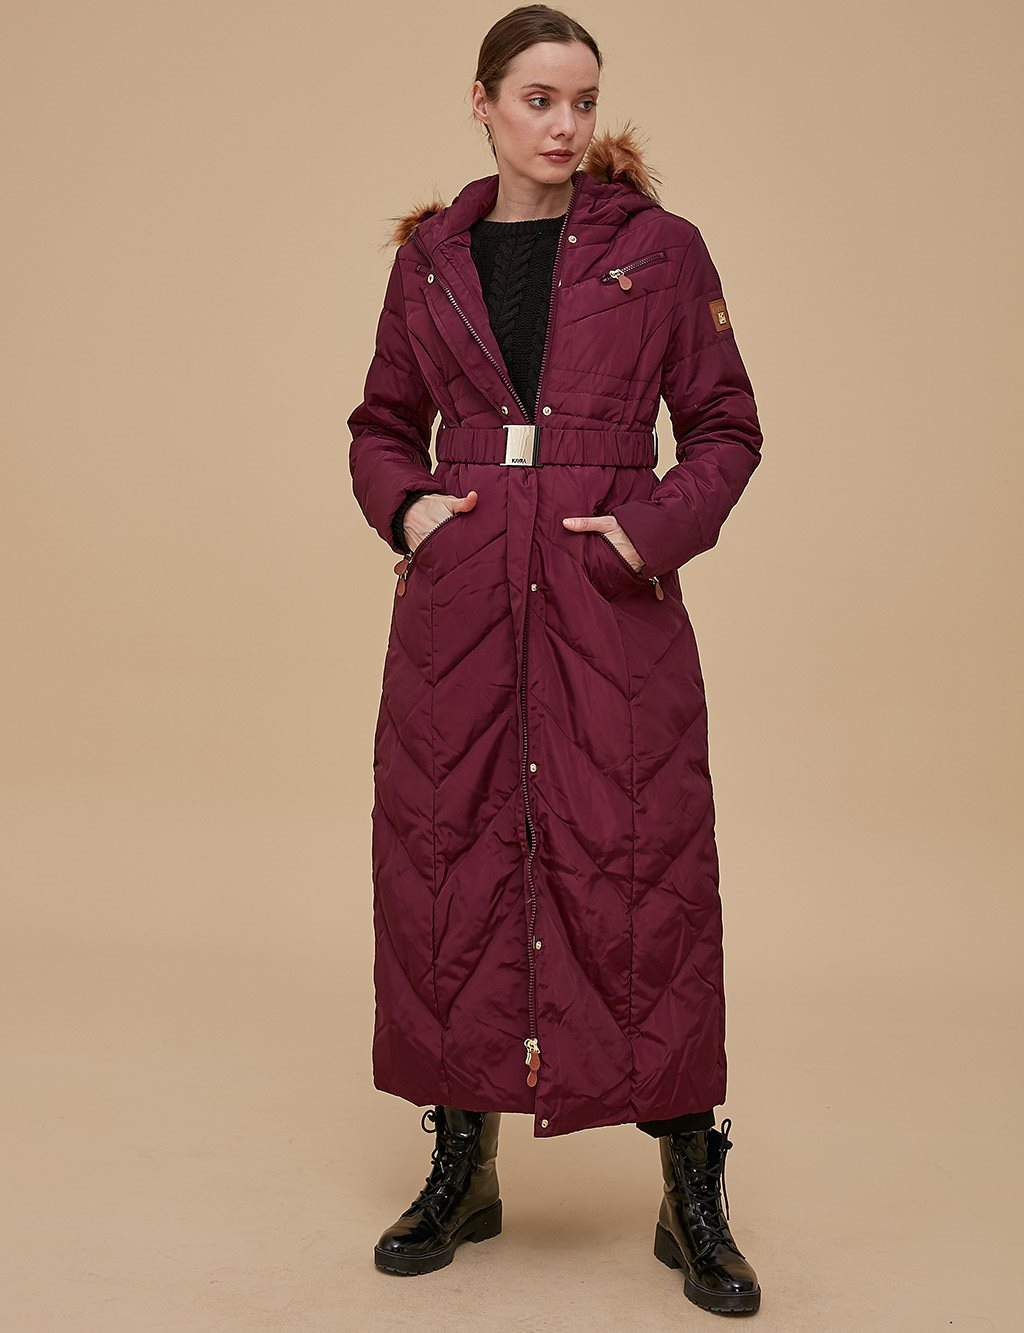 Goose-Quill Coat With Zipper Burgundy A8 27003